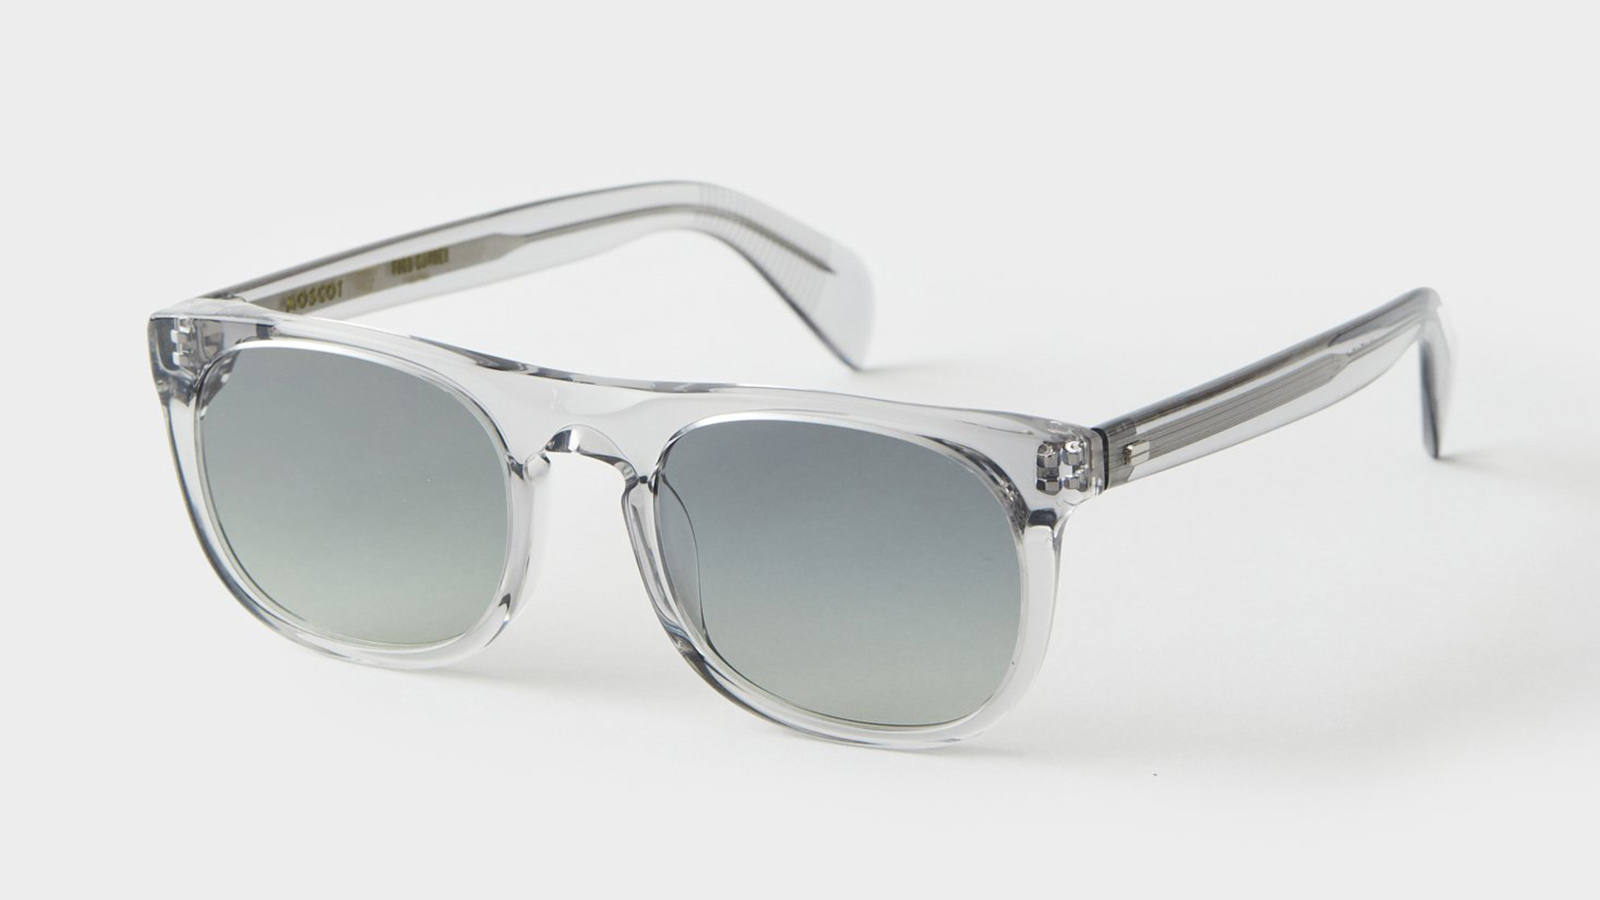 Todd Snyder x MOSCOT 10 Year Anniversary Editions